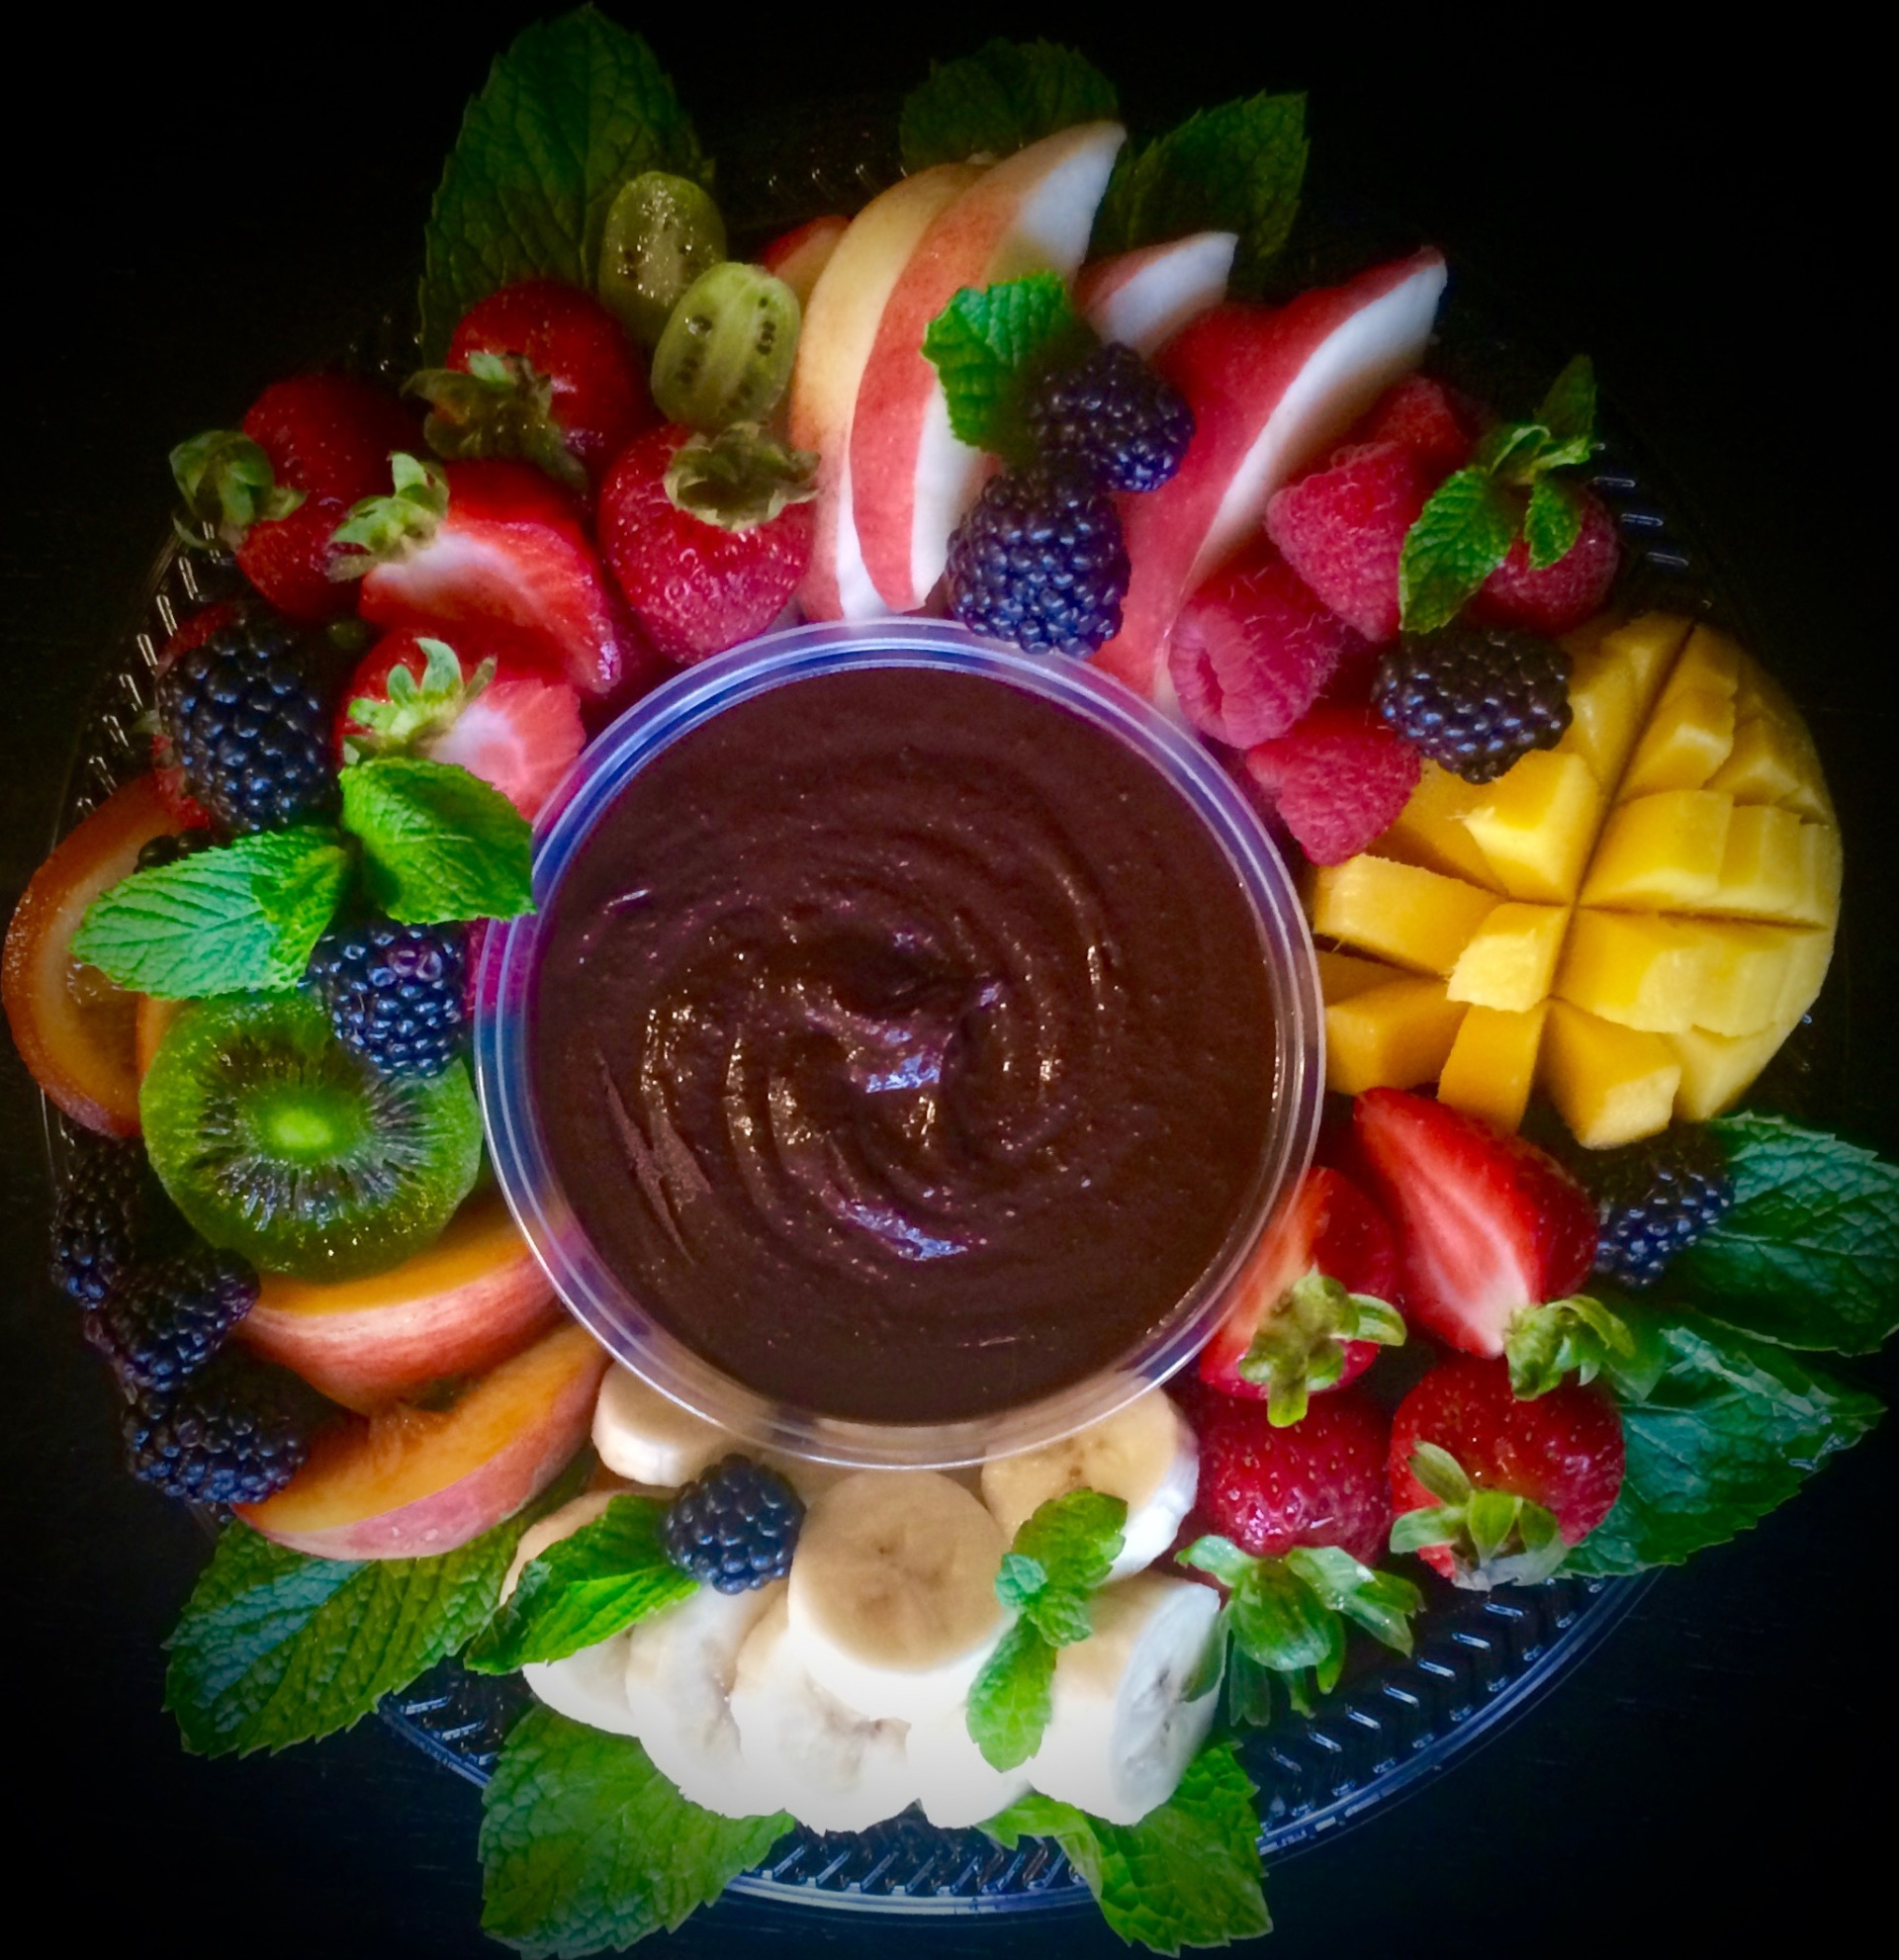 Chocolate Dessert Hummus